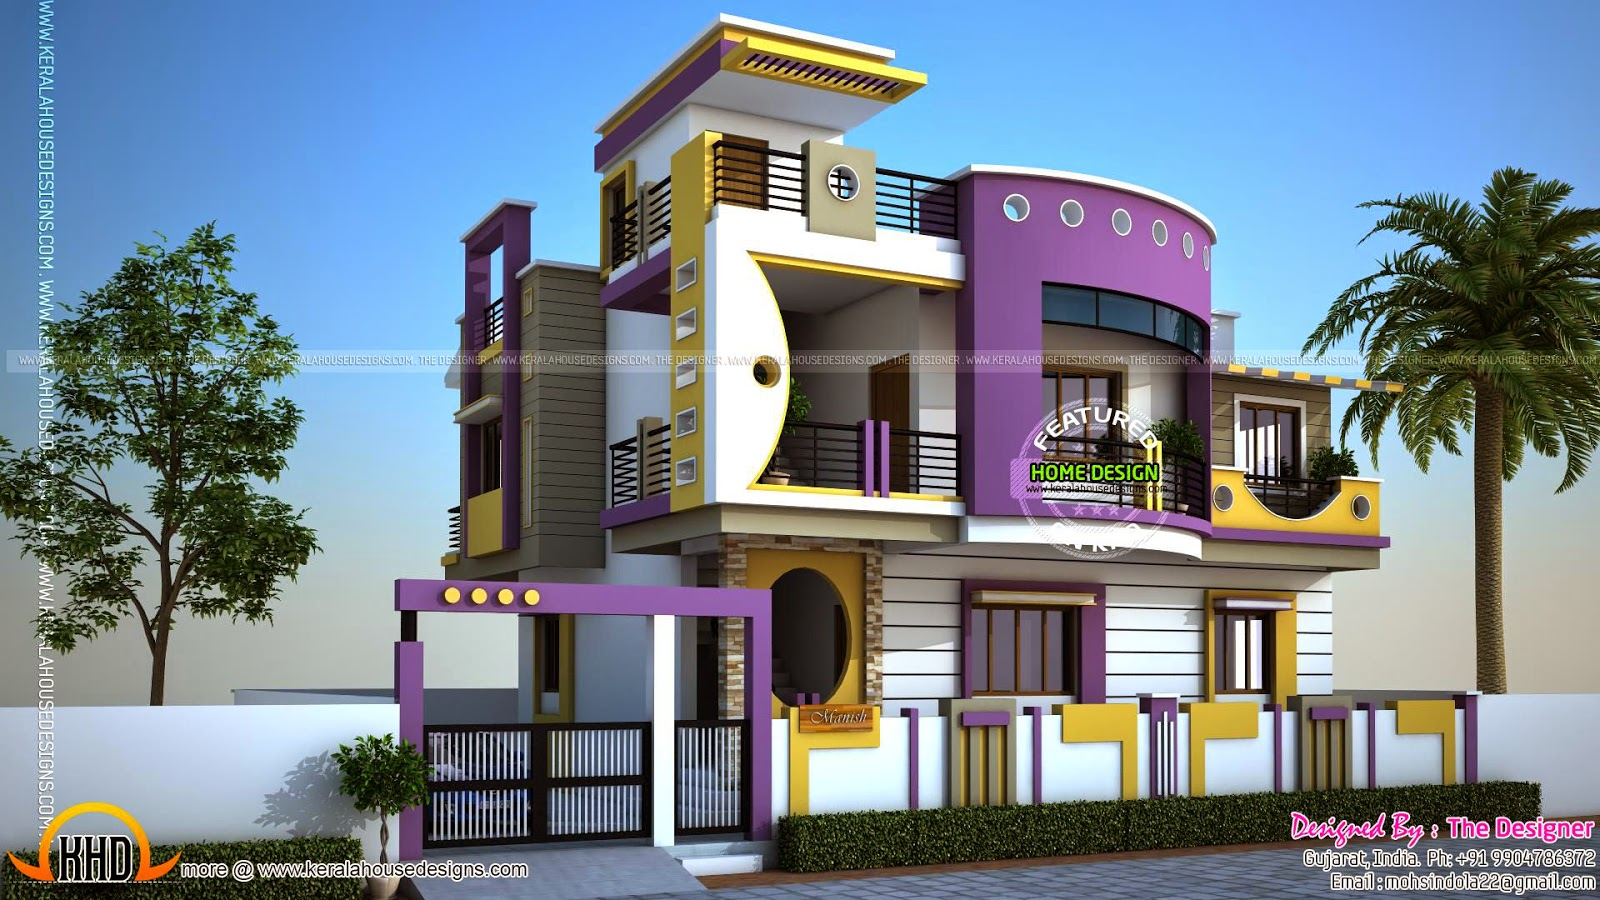 House exterior designs in contemporary style kerala home for House design pictures exterior